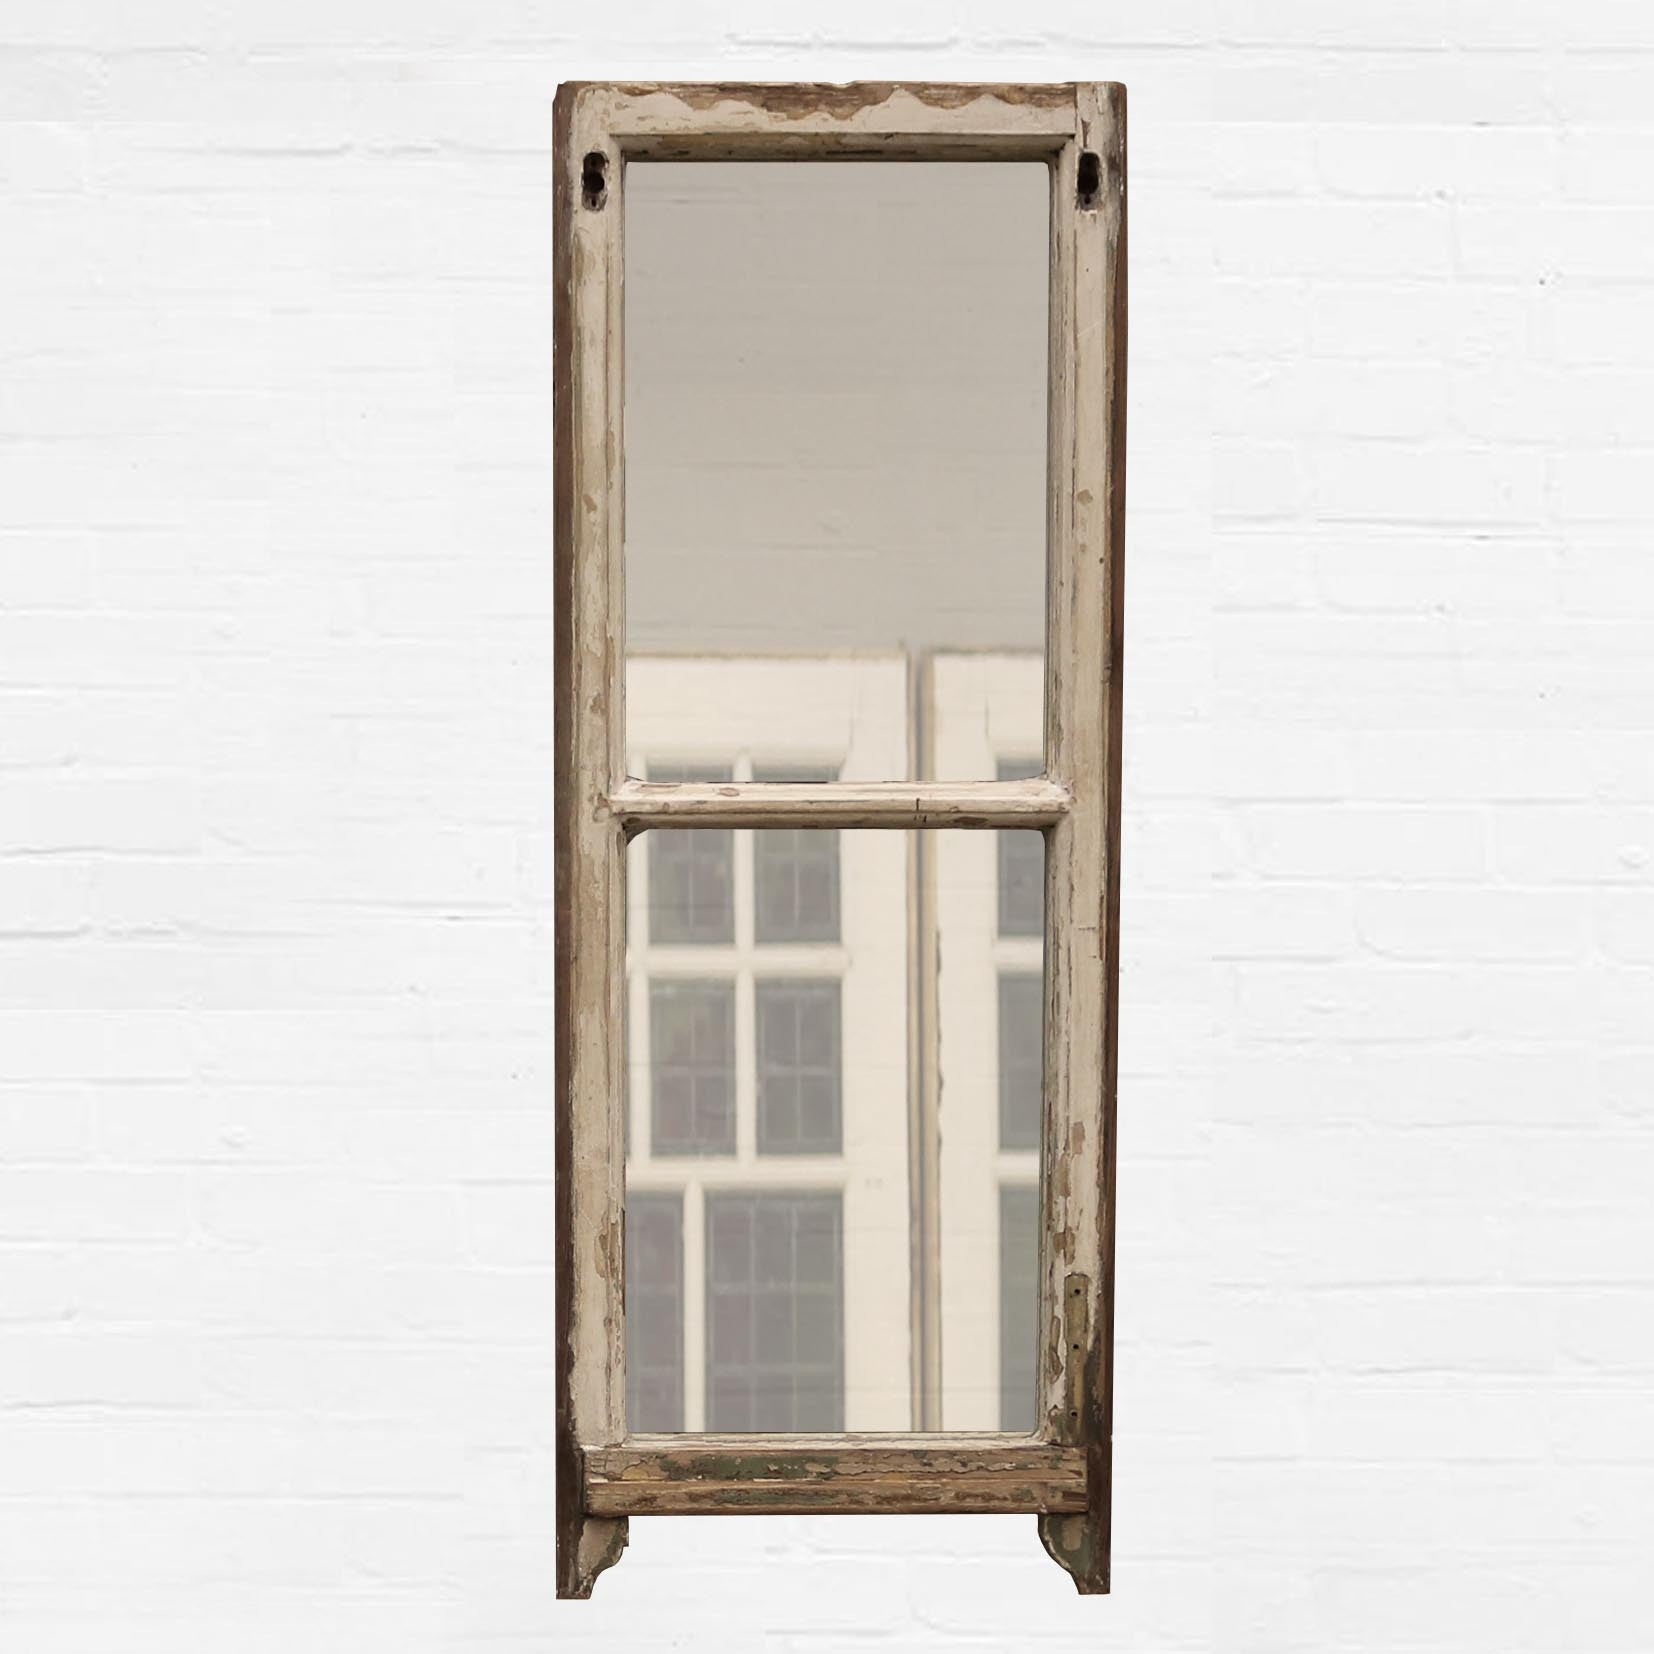 Reclaimed Antique Sash Window Mirror - architectural-forum